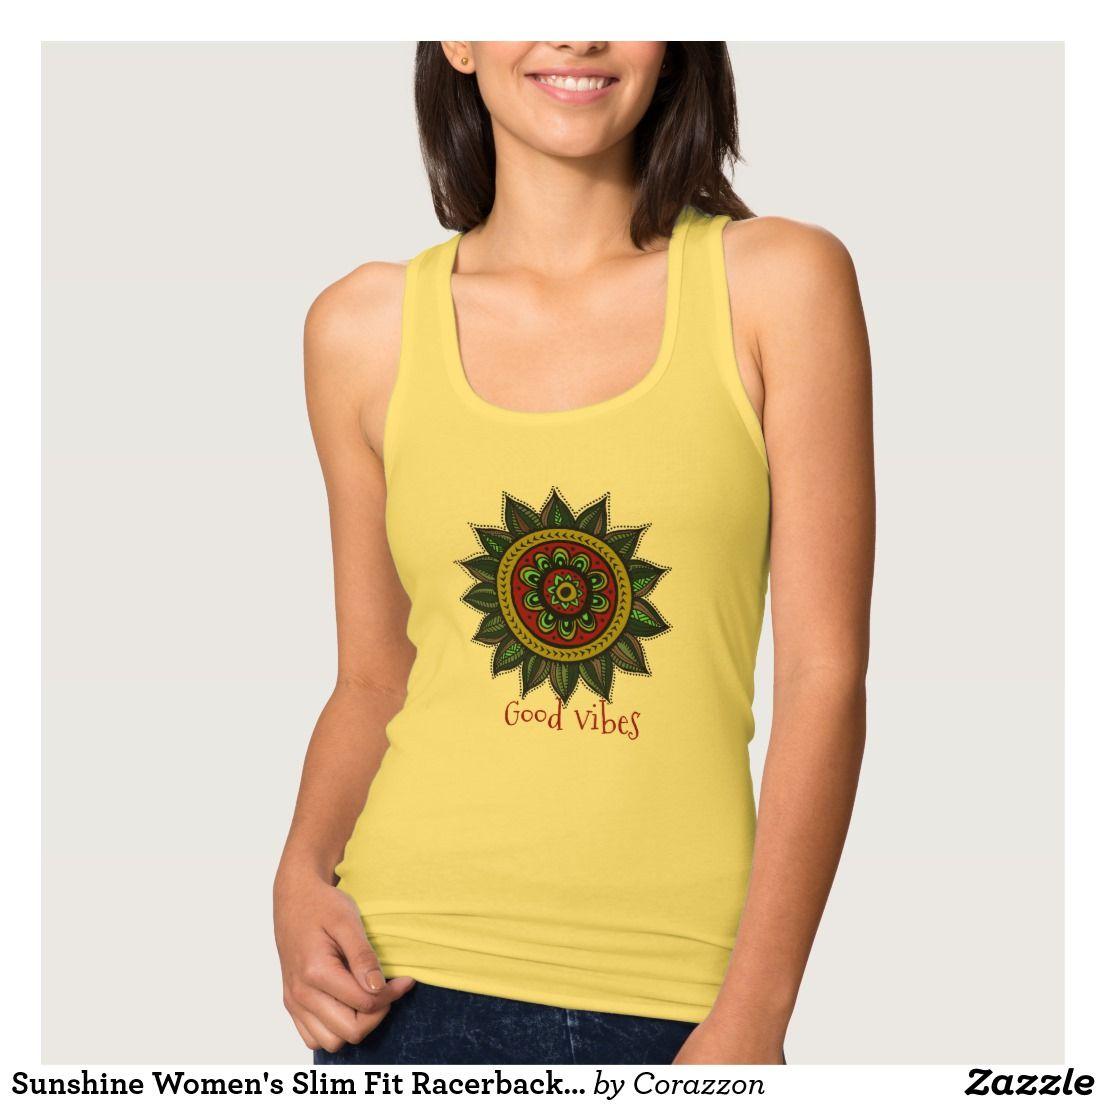 Printed Racerback Top - Sun Mandala by VIDA VIDA Sale Fast Delivery Outlet With Paypal Order wge8nk